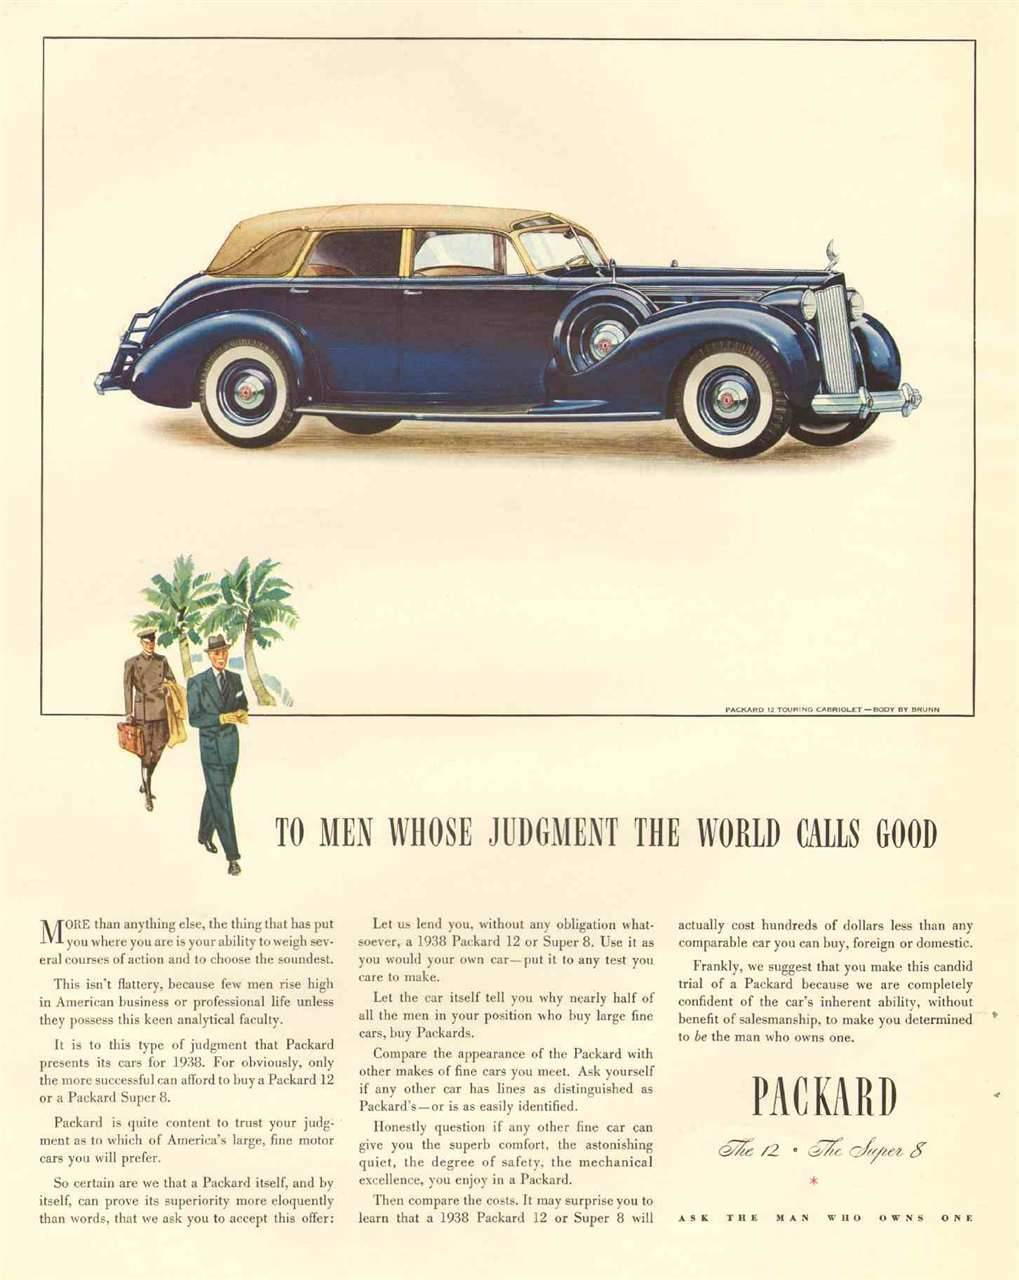 1938 Packard 12 Touring Cabriolet by Brunn 2